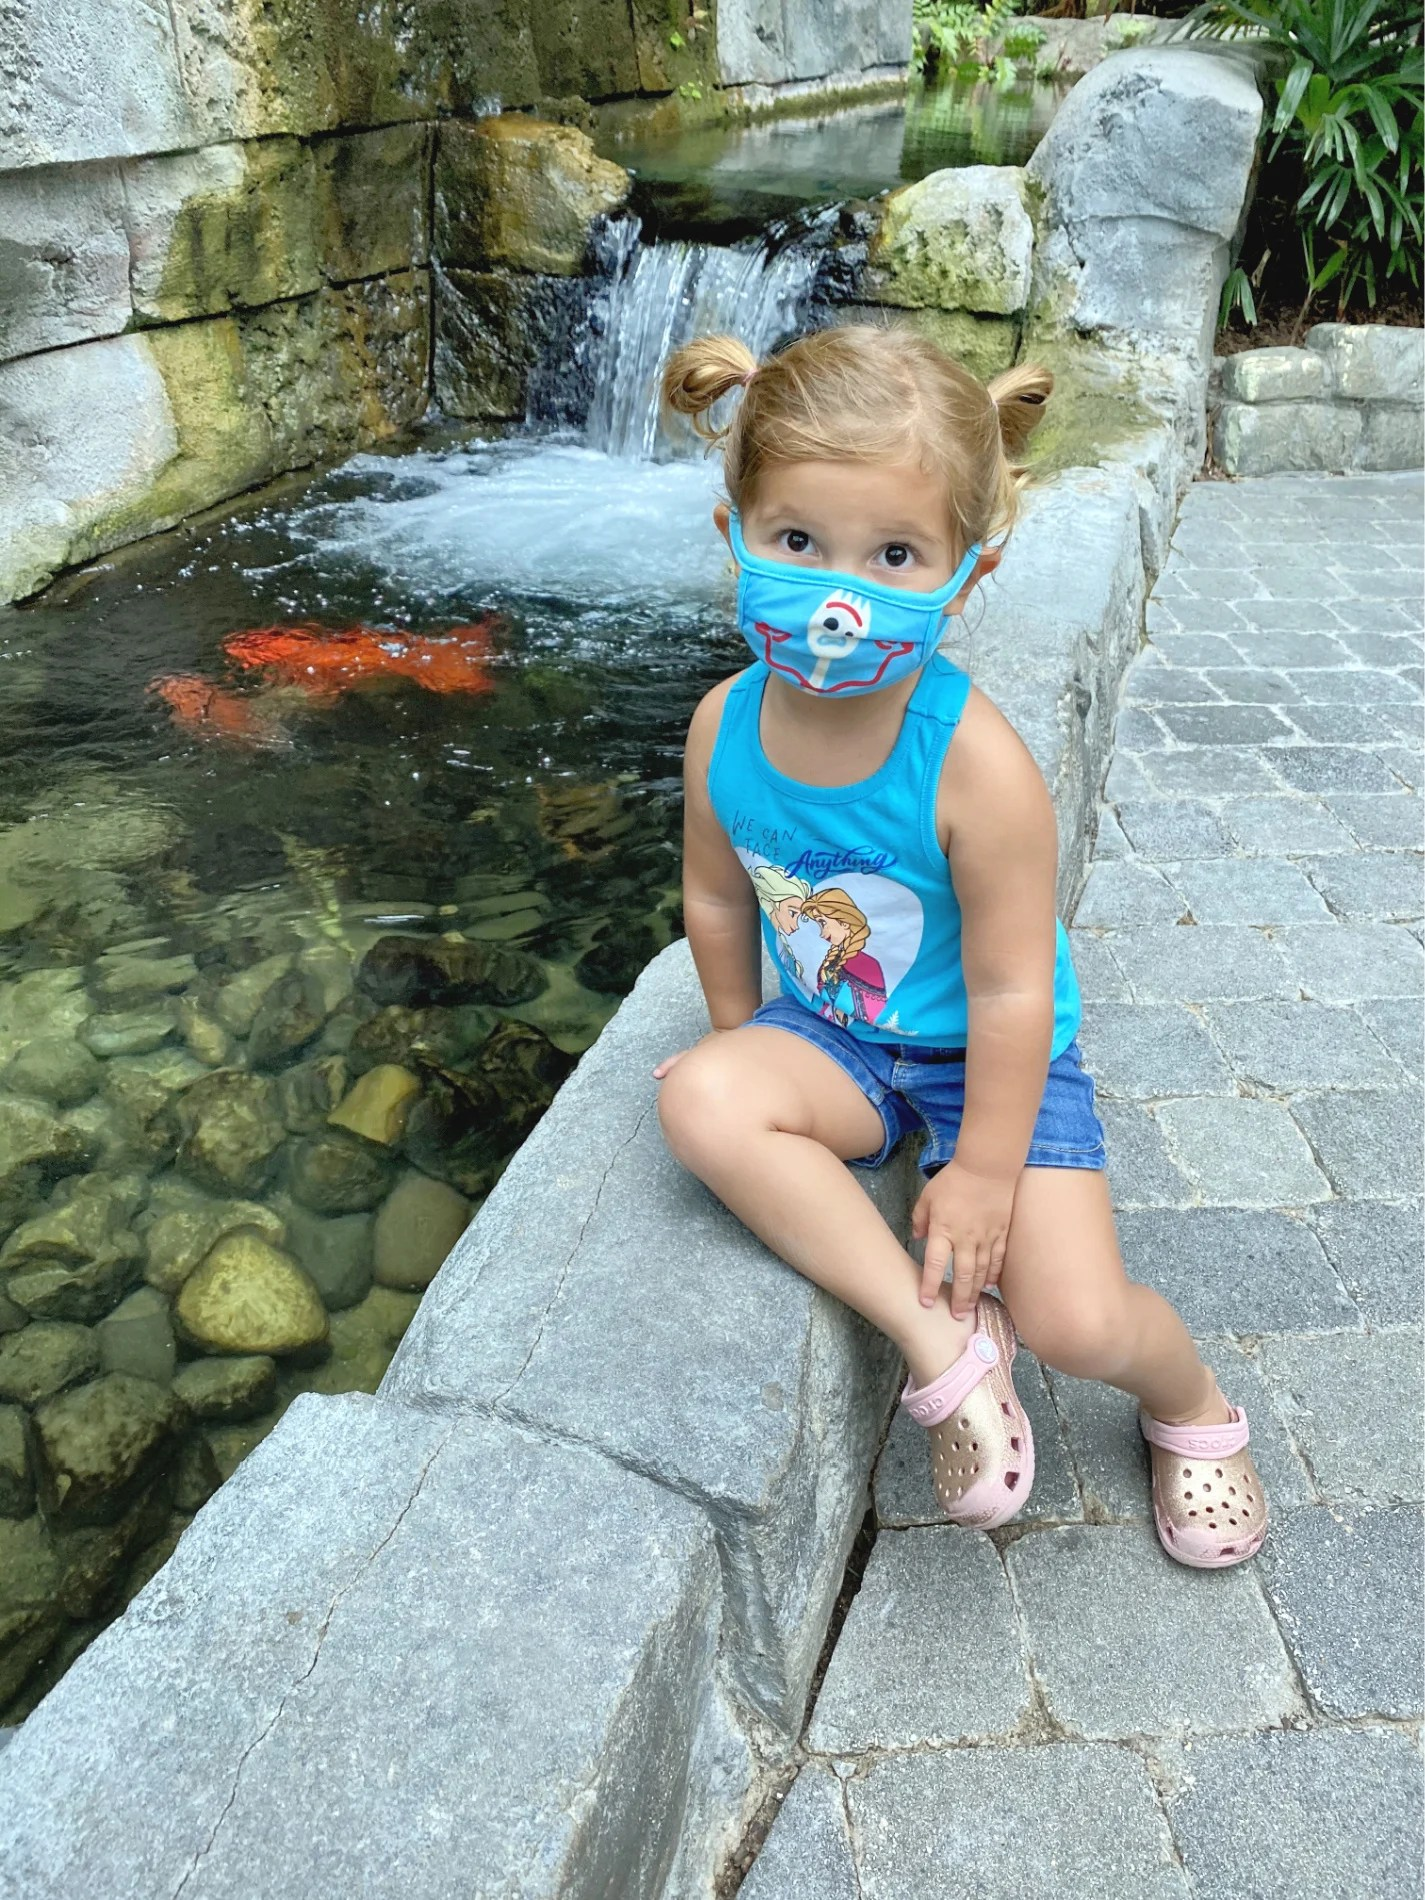 Little girl with blue mask on face sitting next to a koi pond.